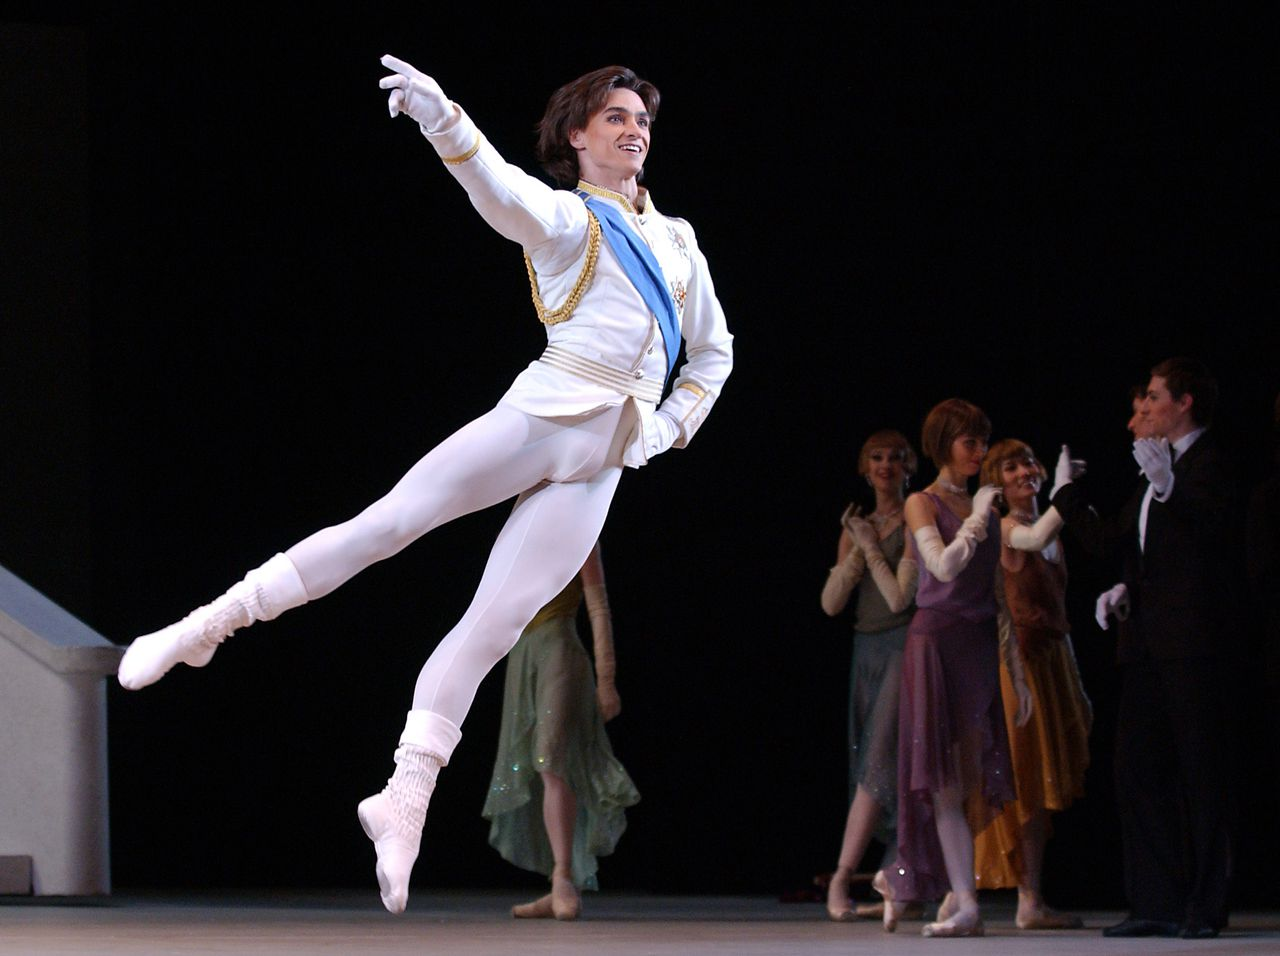 01 Feb 2006, Moscow, Russia --- Sergei Filin dancing the role of the Prince in Sergei Prokofiev's Cinderella, directed by Yuri Borisov and choreographed by Yuri Posokhov. The pre-premiere performance took place on the Bolshoi Theater's new stage. --- Image by © Kurov Alexander/ITAR-TASS/Corbis